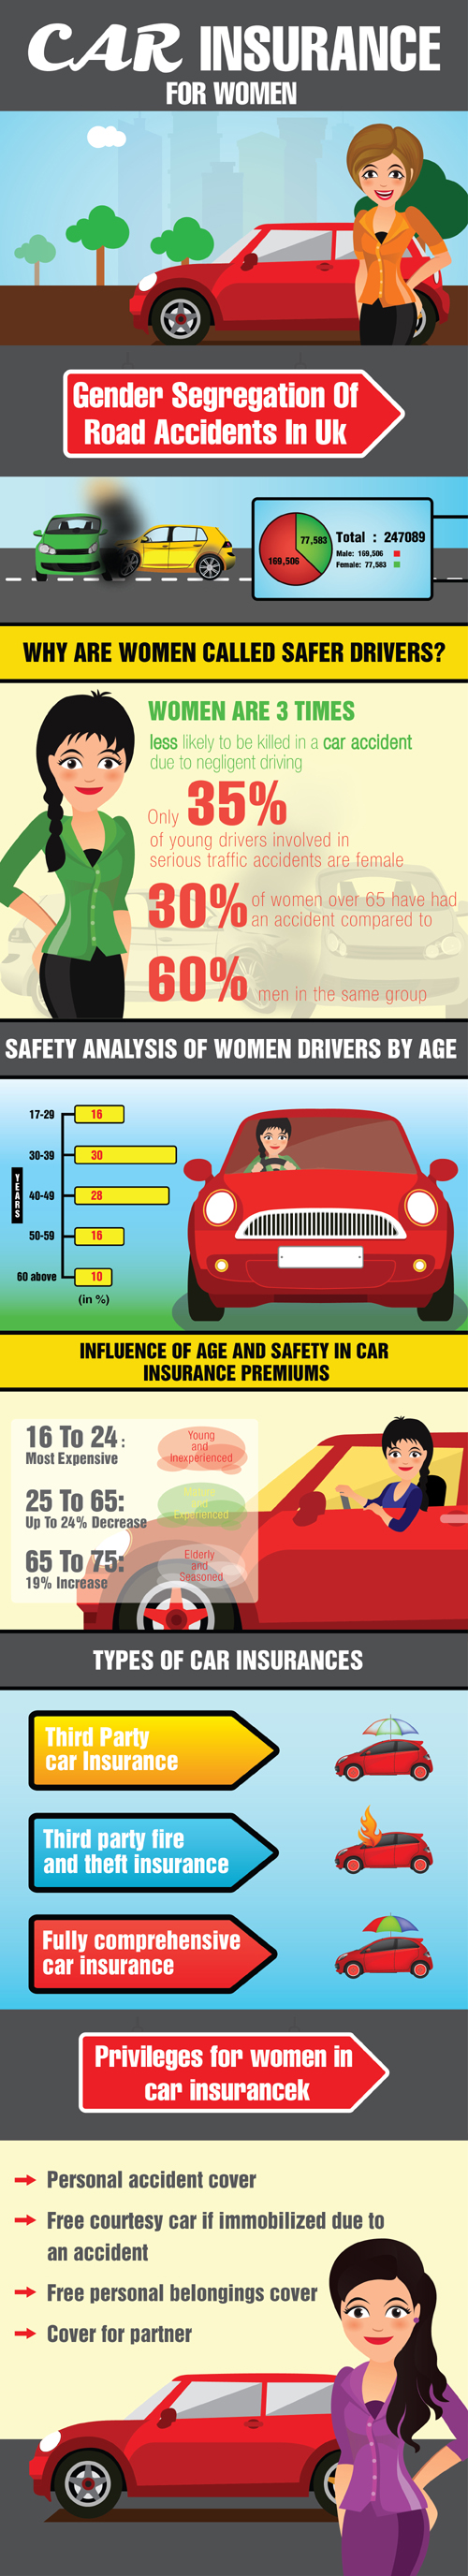 Car Insurance For Women Infographic Post